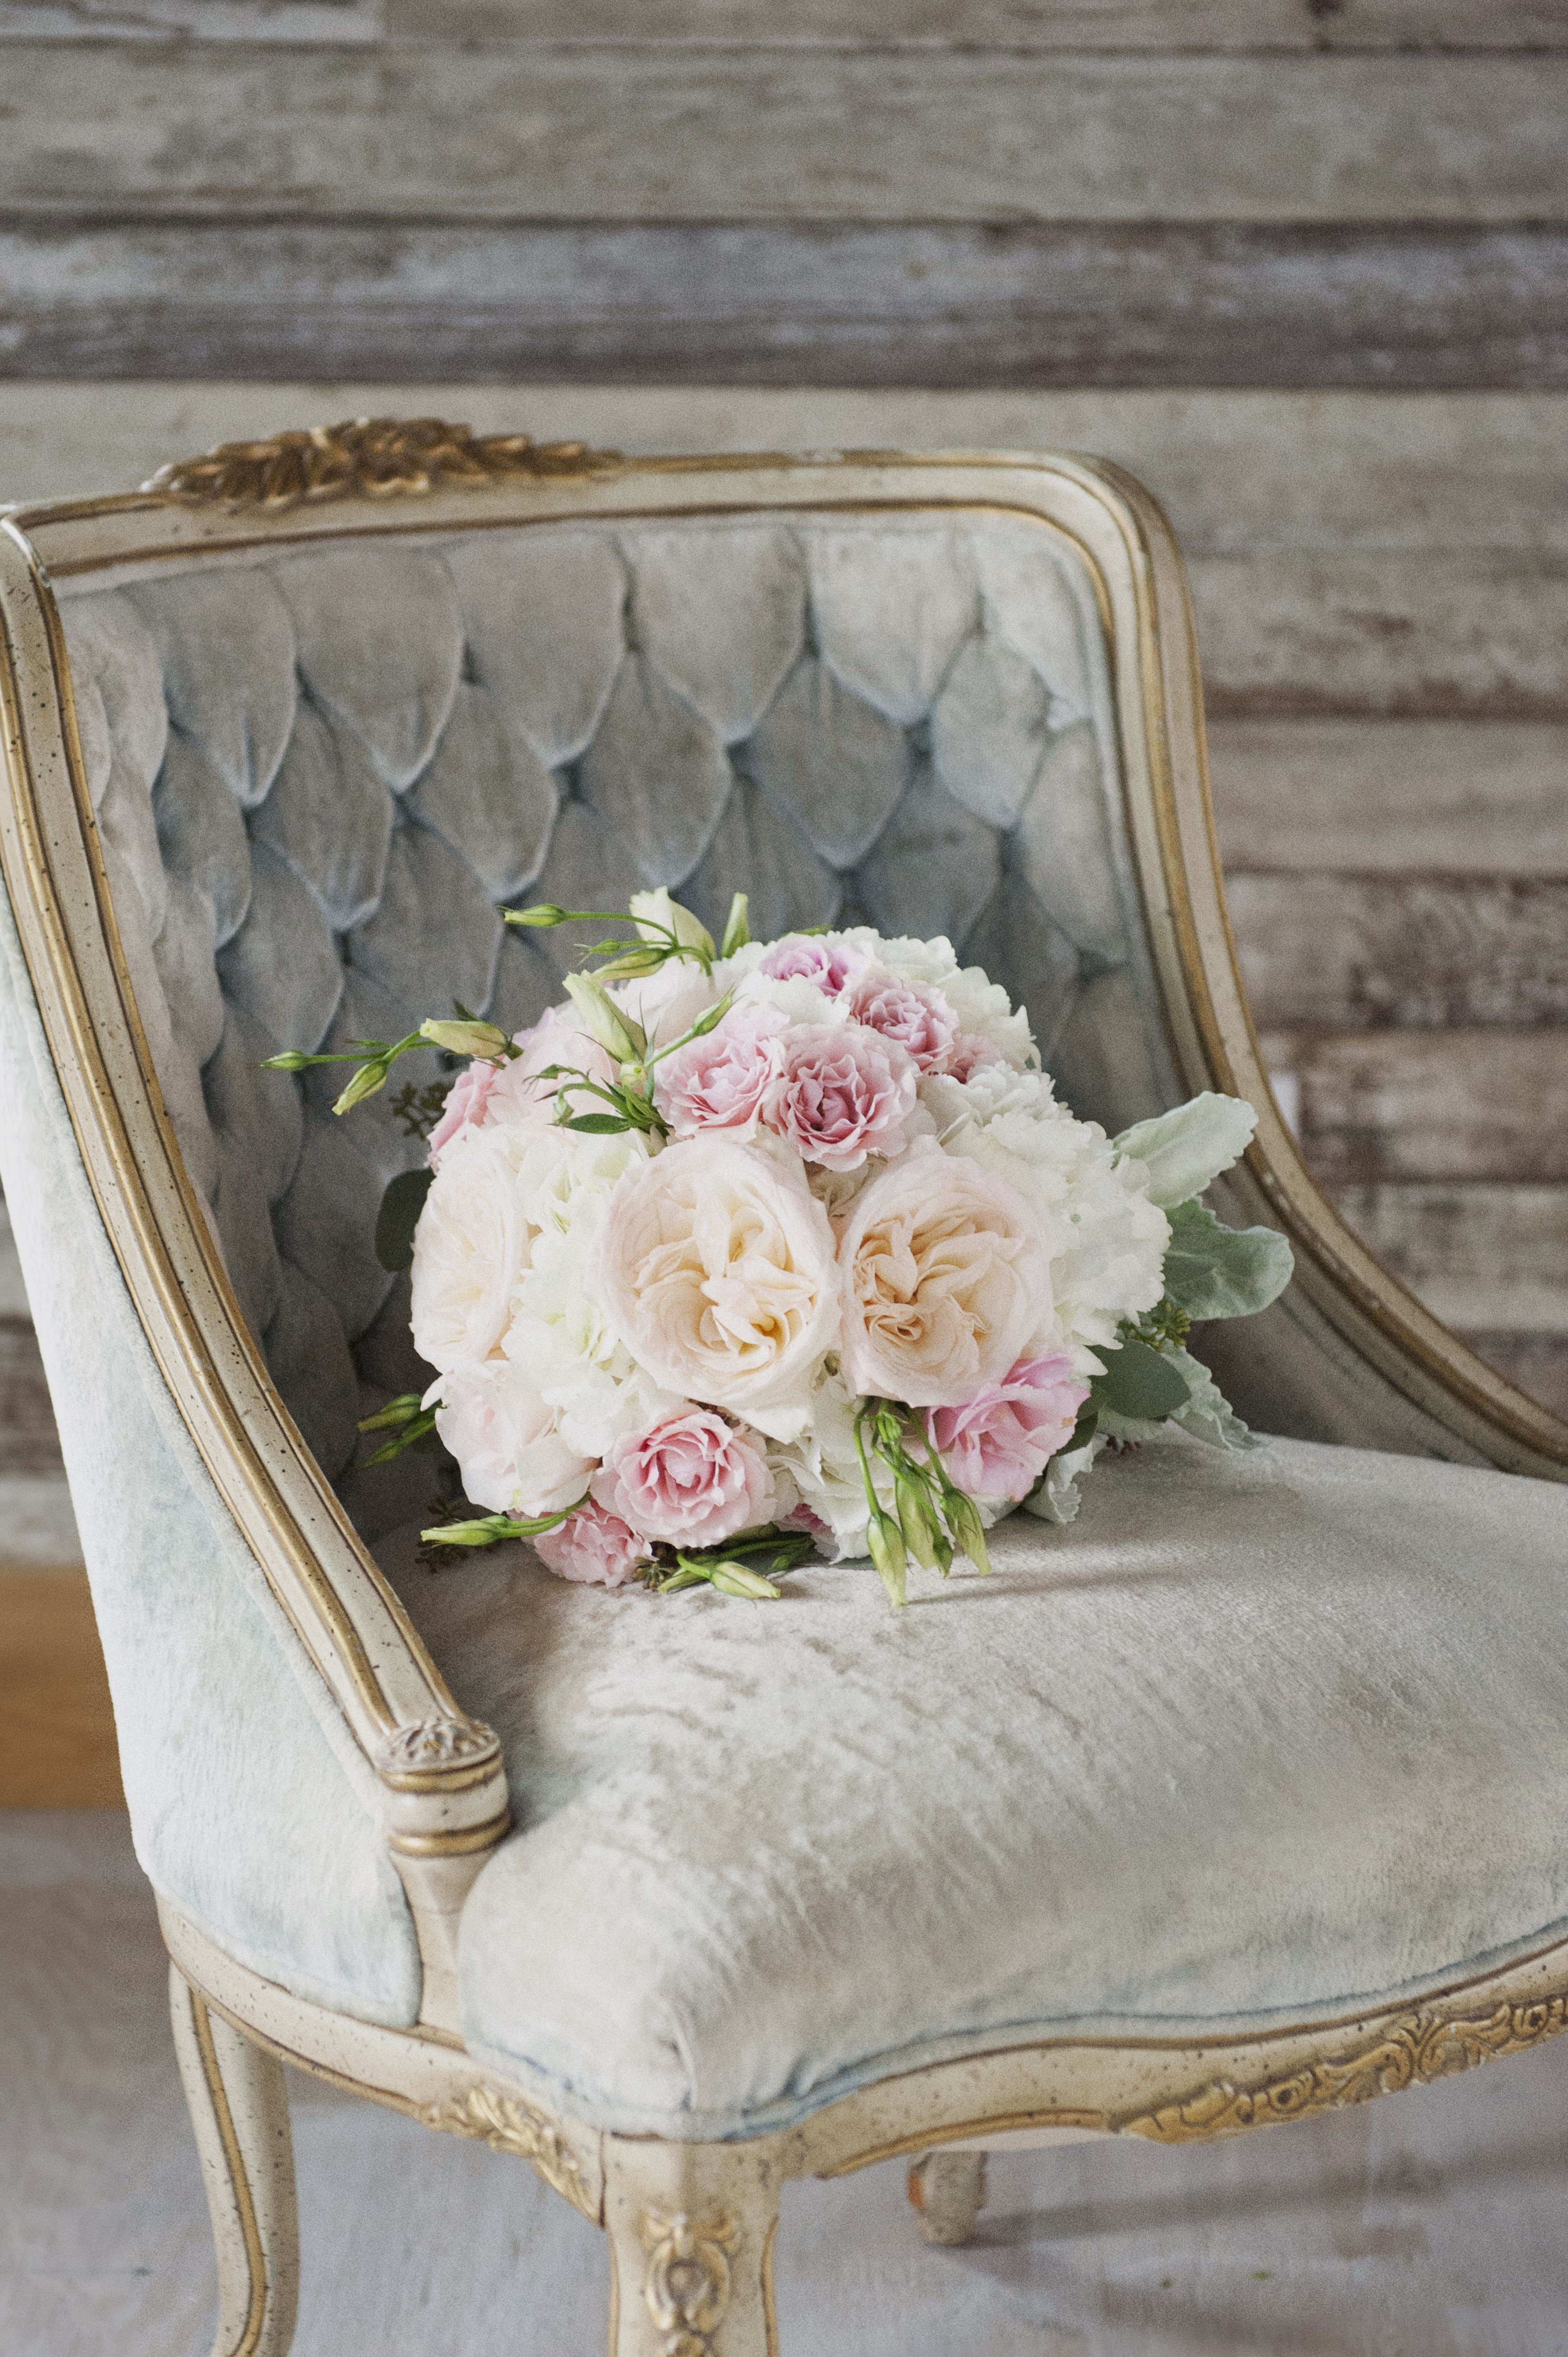 Antique wedding chair - Vintage Velvet Chair And Rose Bouquet